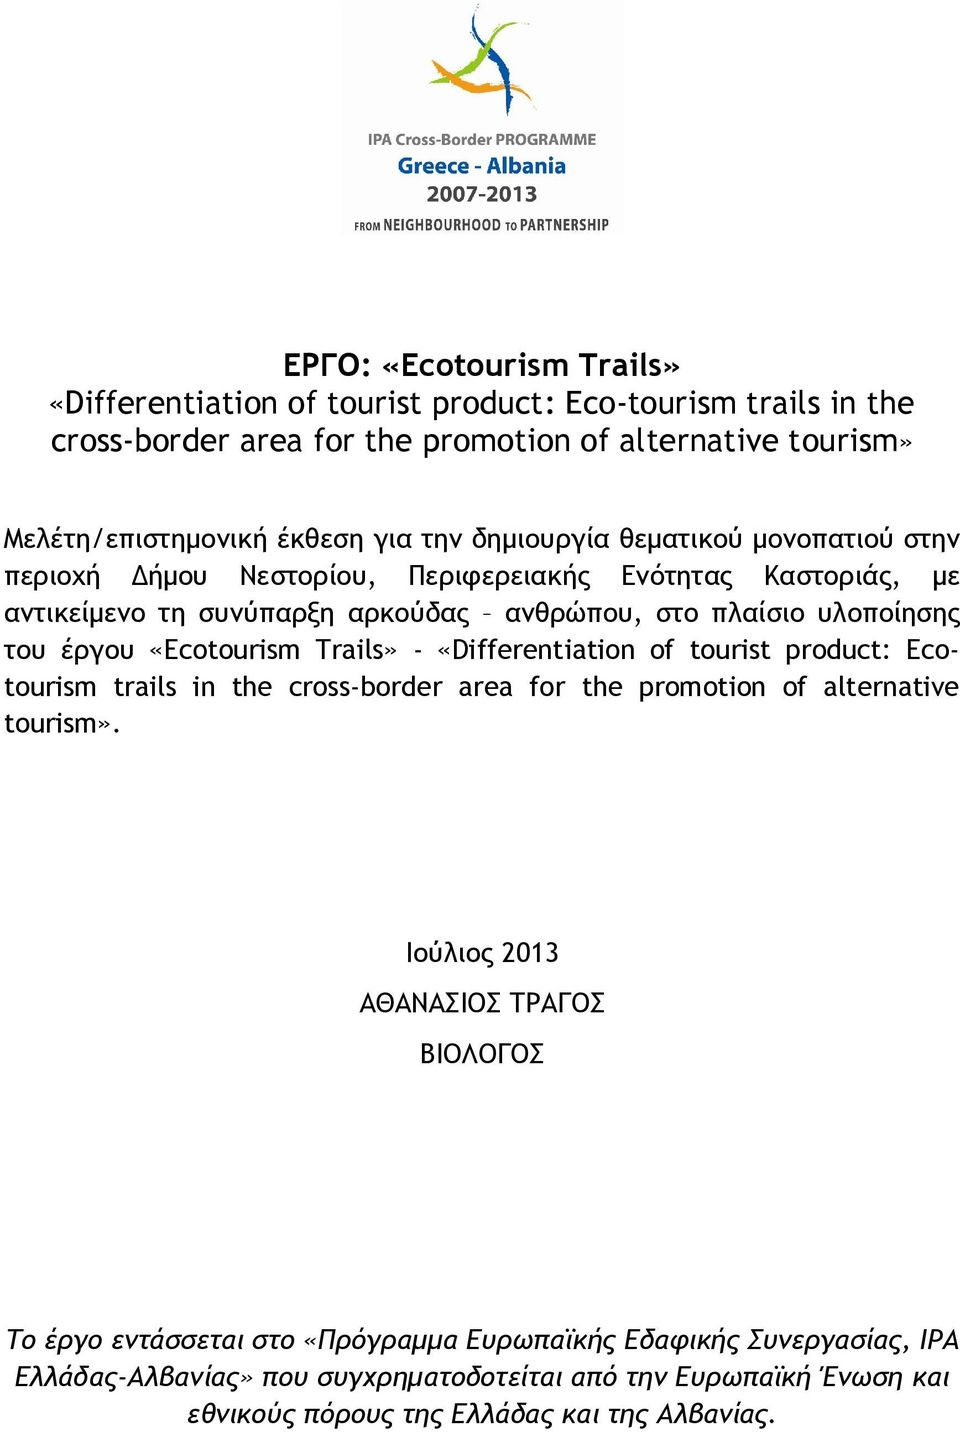 «Ecotourism Trails» - «Differentiation of tourist product: Ecotourism trails in the cross-border area for the promotion of alternative tourism».